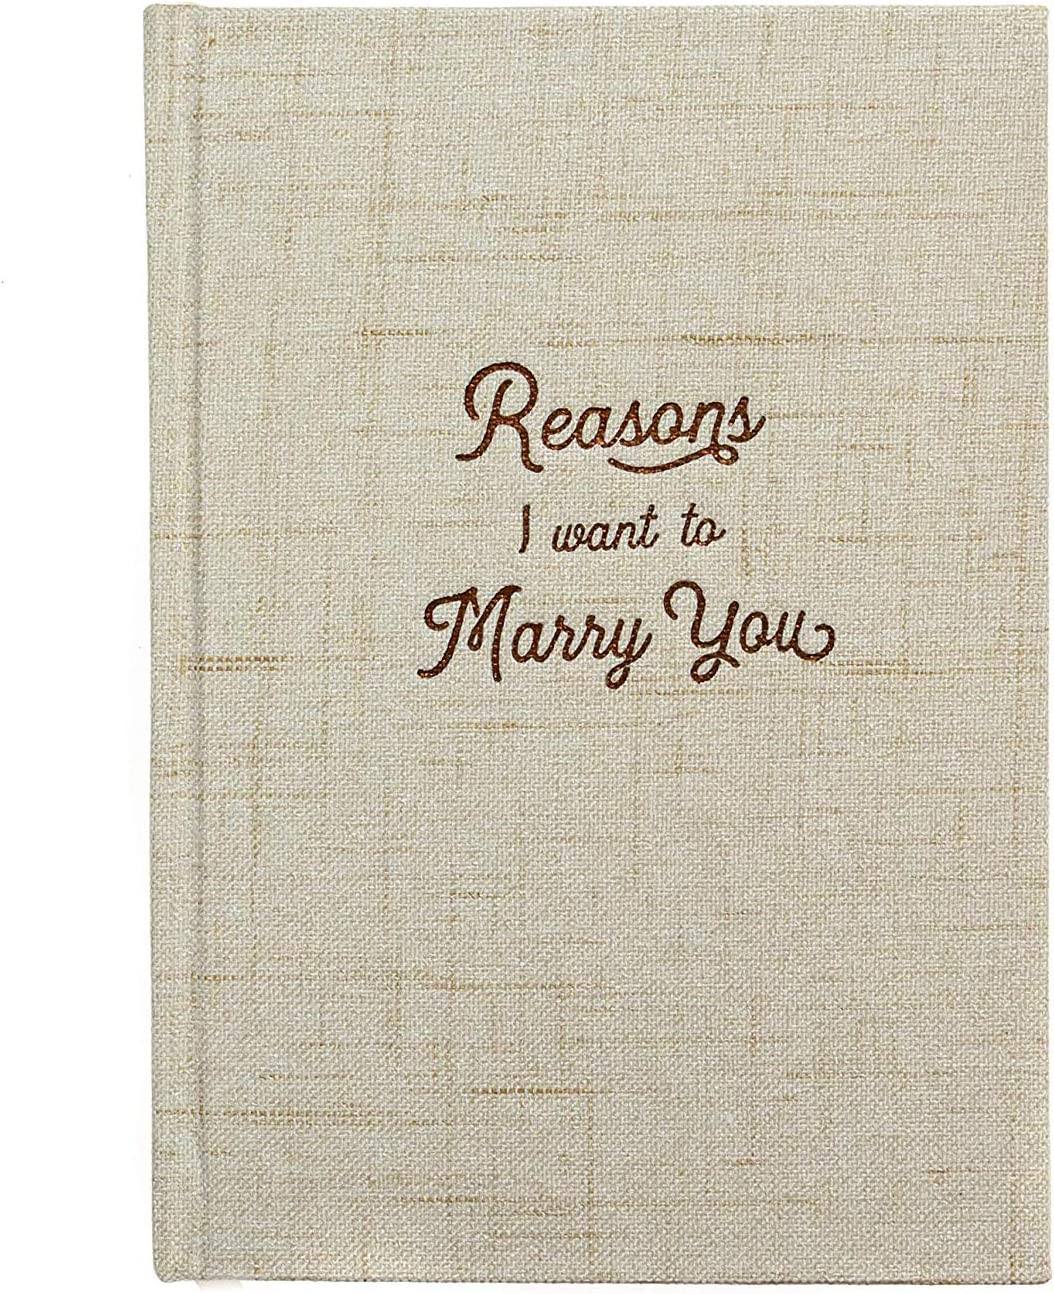 Letter To Fiance Before Wedding from images-na.ssl-images-amazon.com